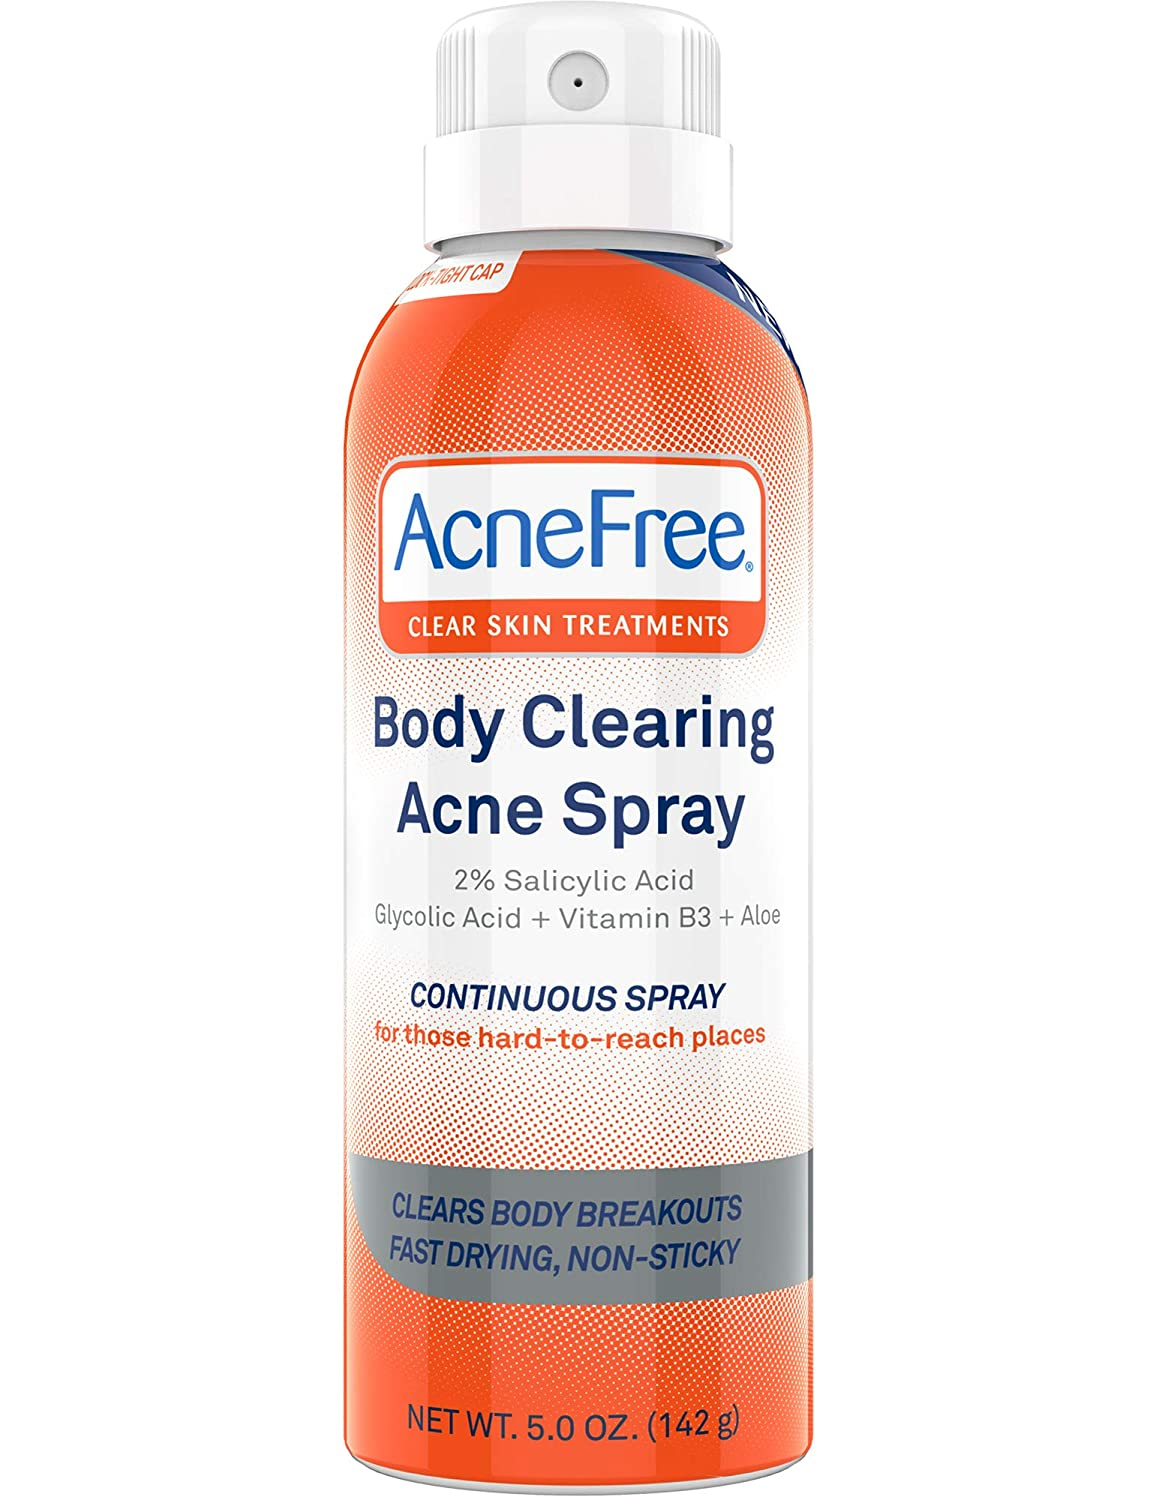 AcneFree Body Clearing Acne Treatment Spray for Body Acne and Back Acne, Treatment with Salicylic Acid 2% and Glycolic Acid, 5 Ounce 3.01875E+11